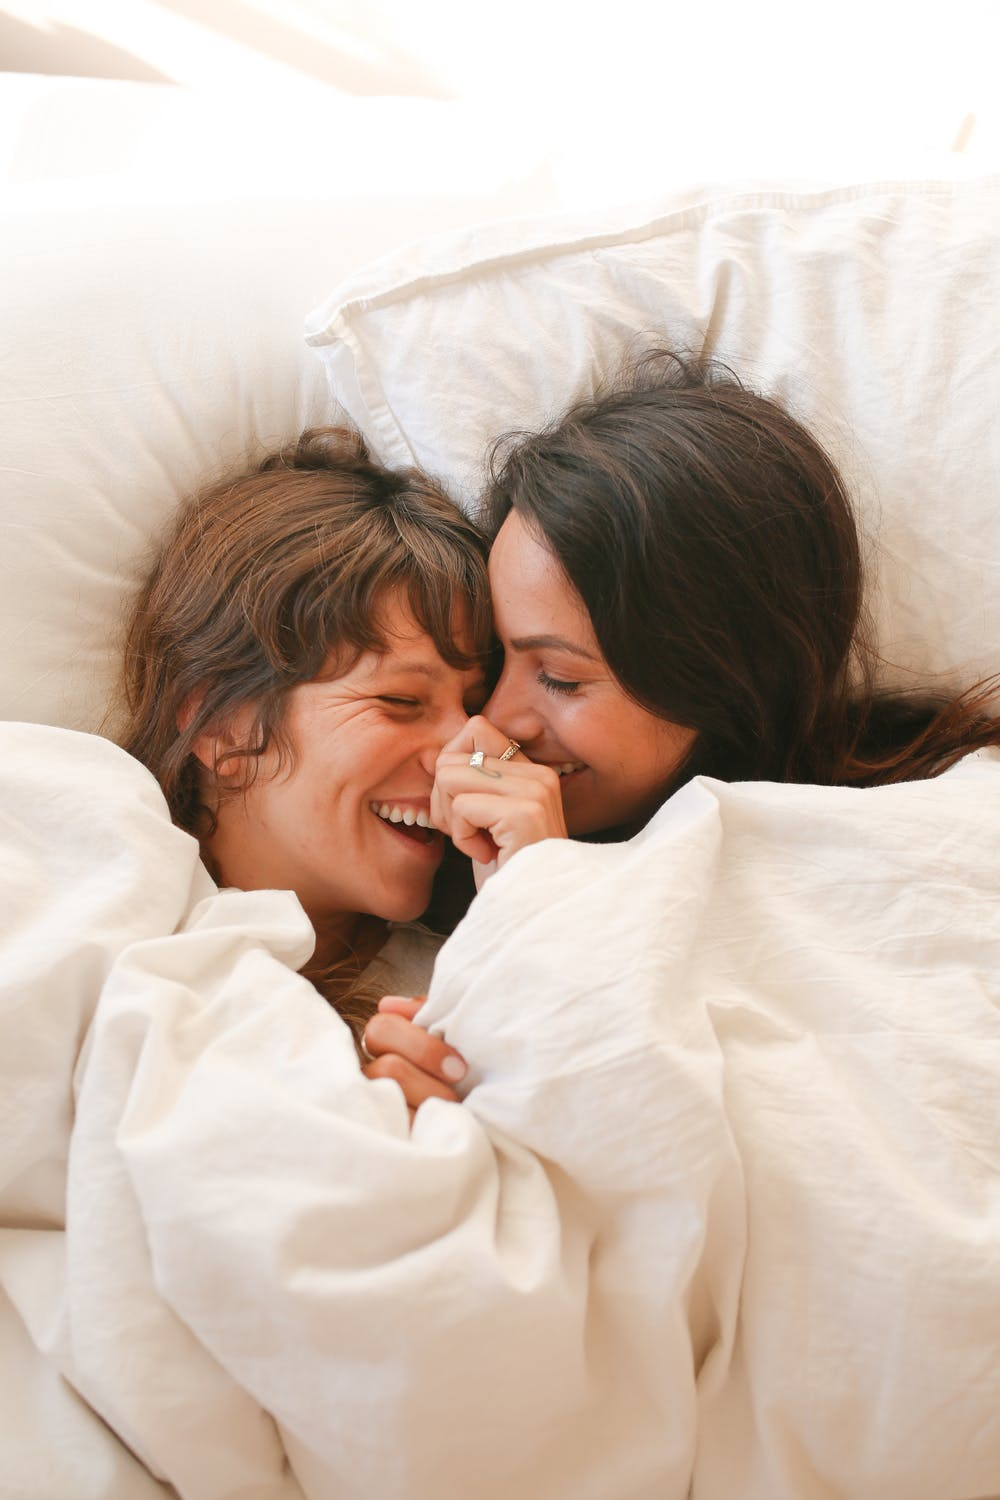 A couple laughs in each other's arms on a bed with white sheets.